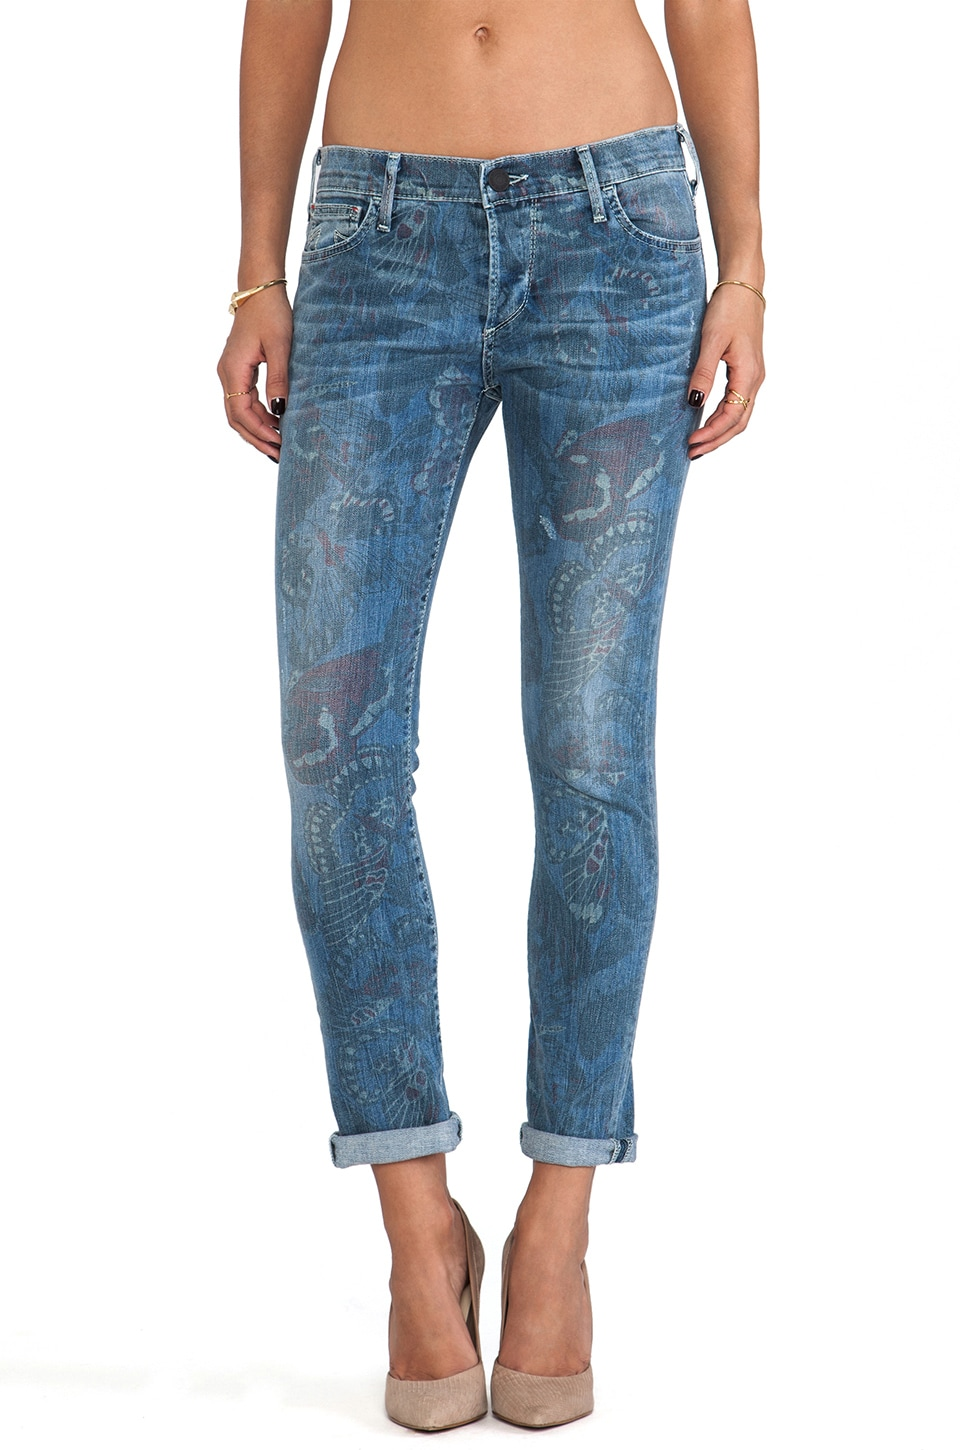 True Religion Leona Mid Rise Rolled Capri in Butterfly Print